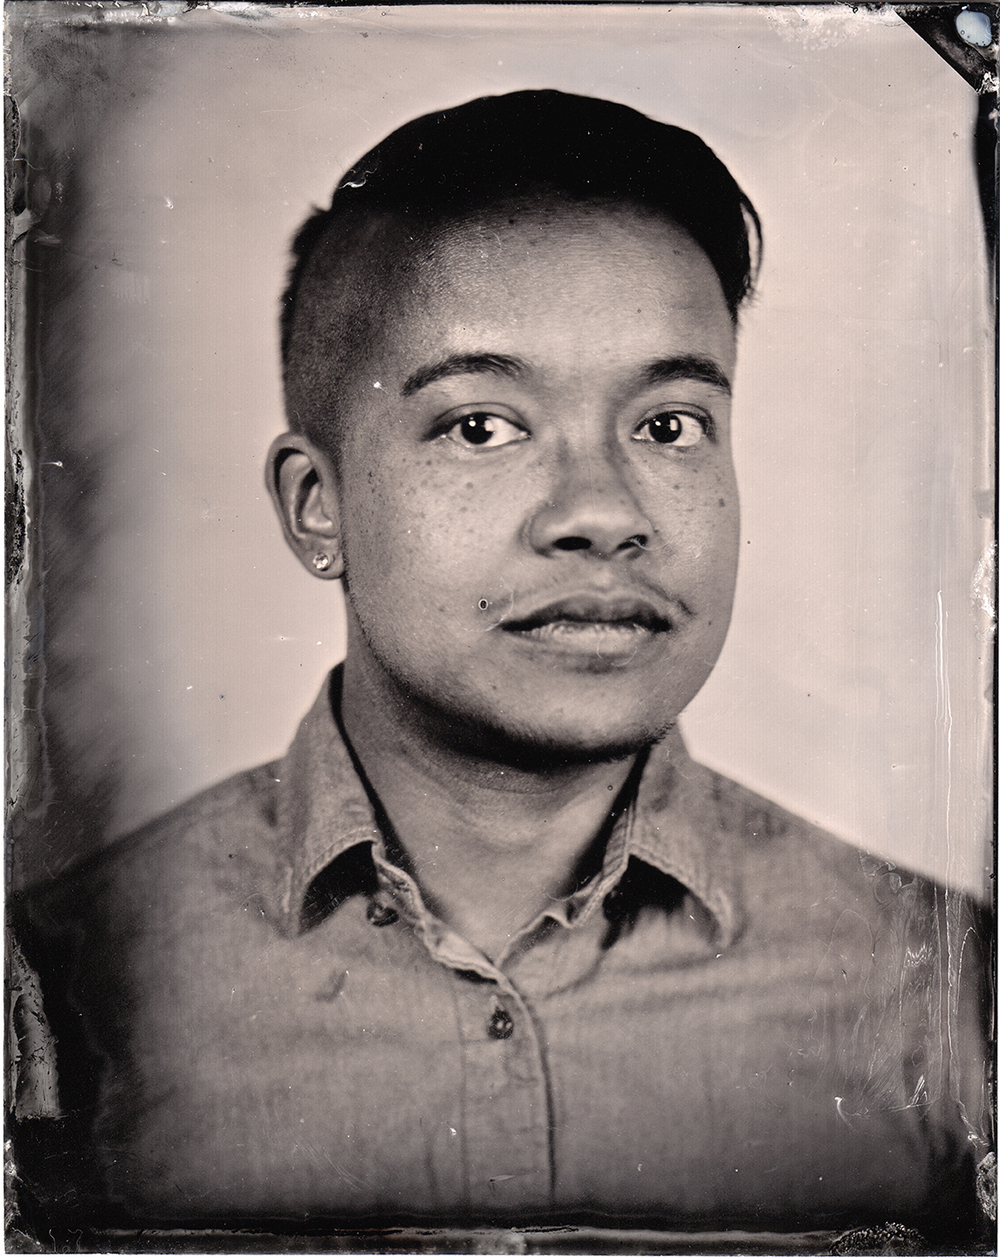 Kadji Amin, Professor of Queer Studies